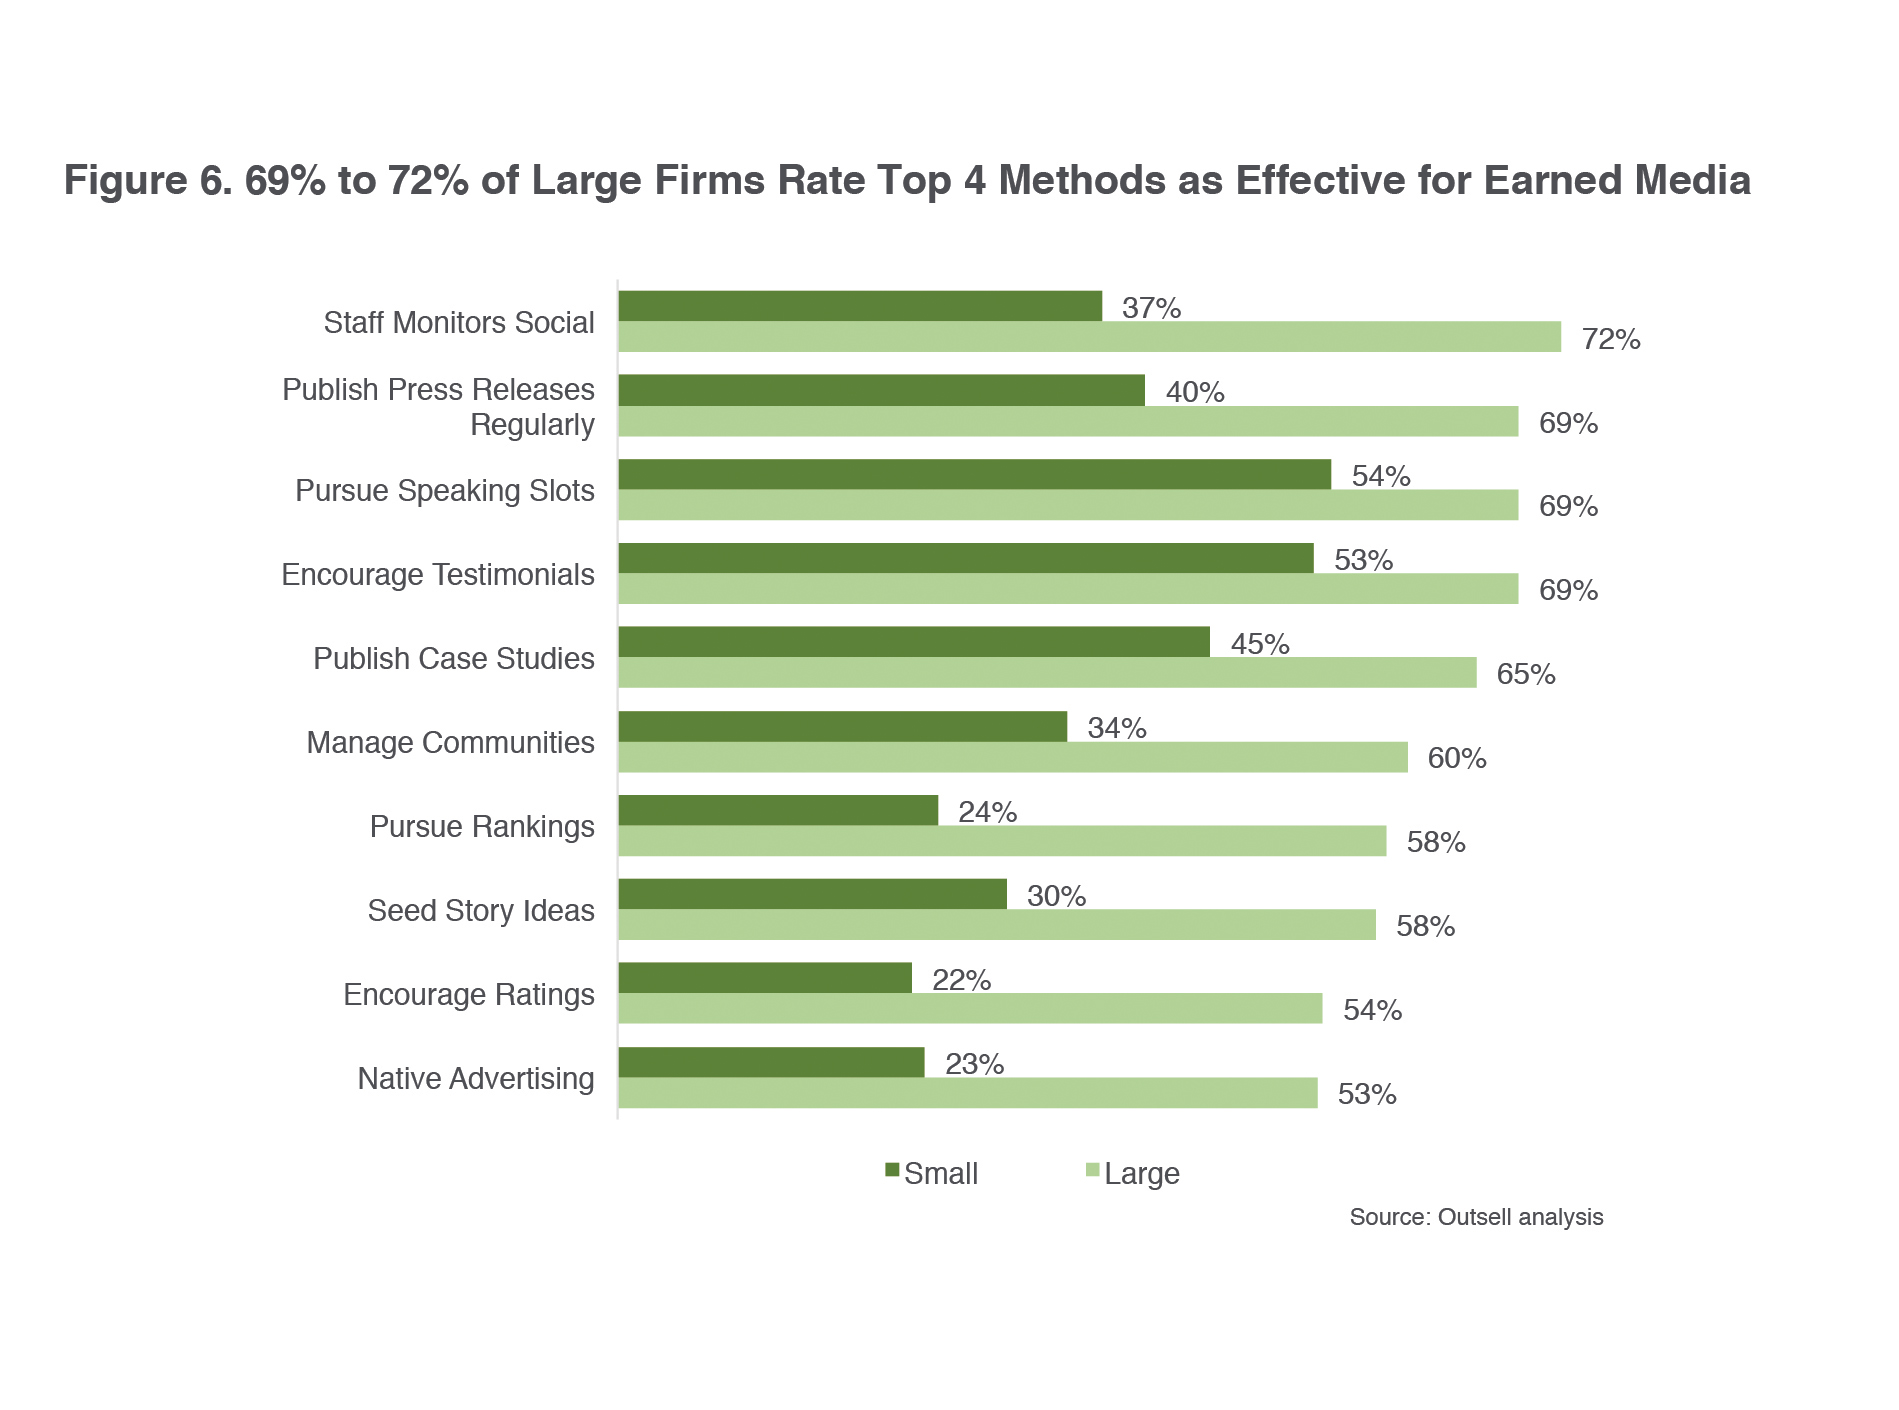 69% to 72% of Large Firms Rate Top 4 Methods as Effective for Earned Media.